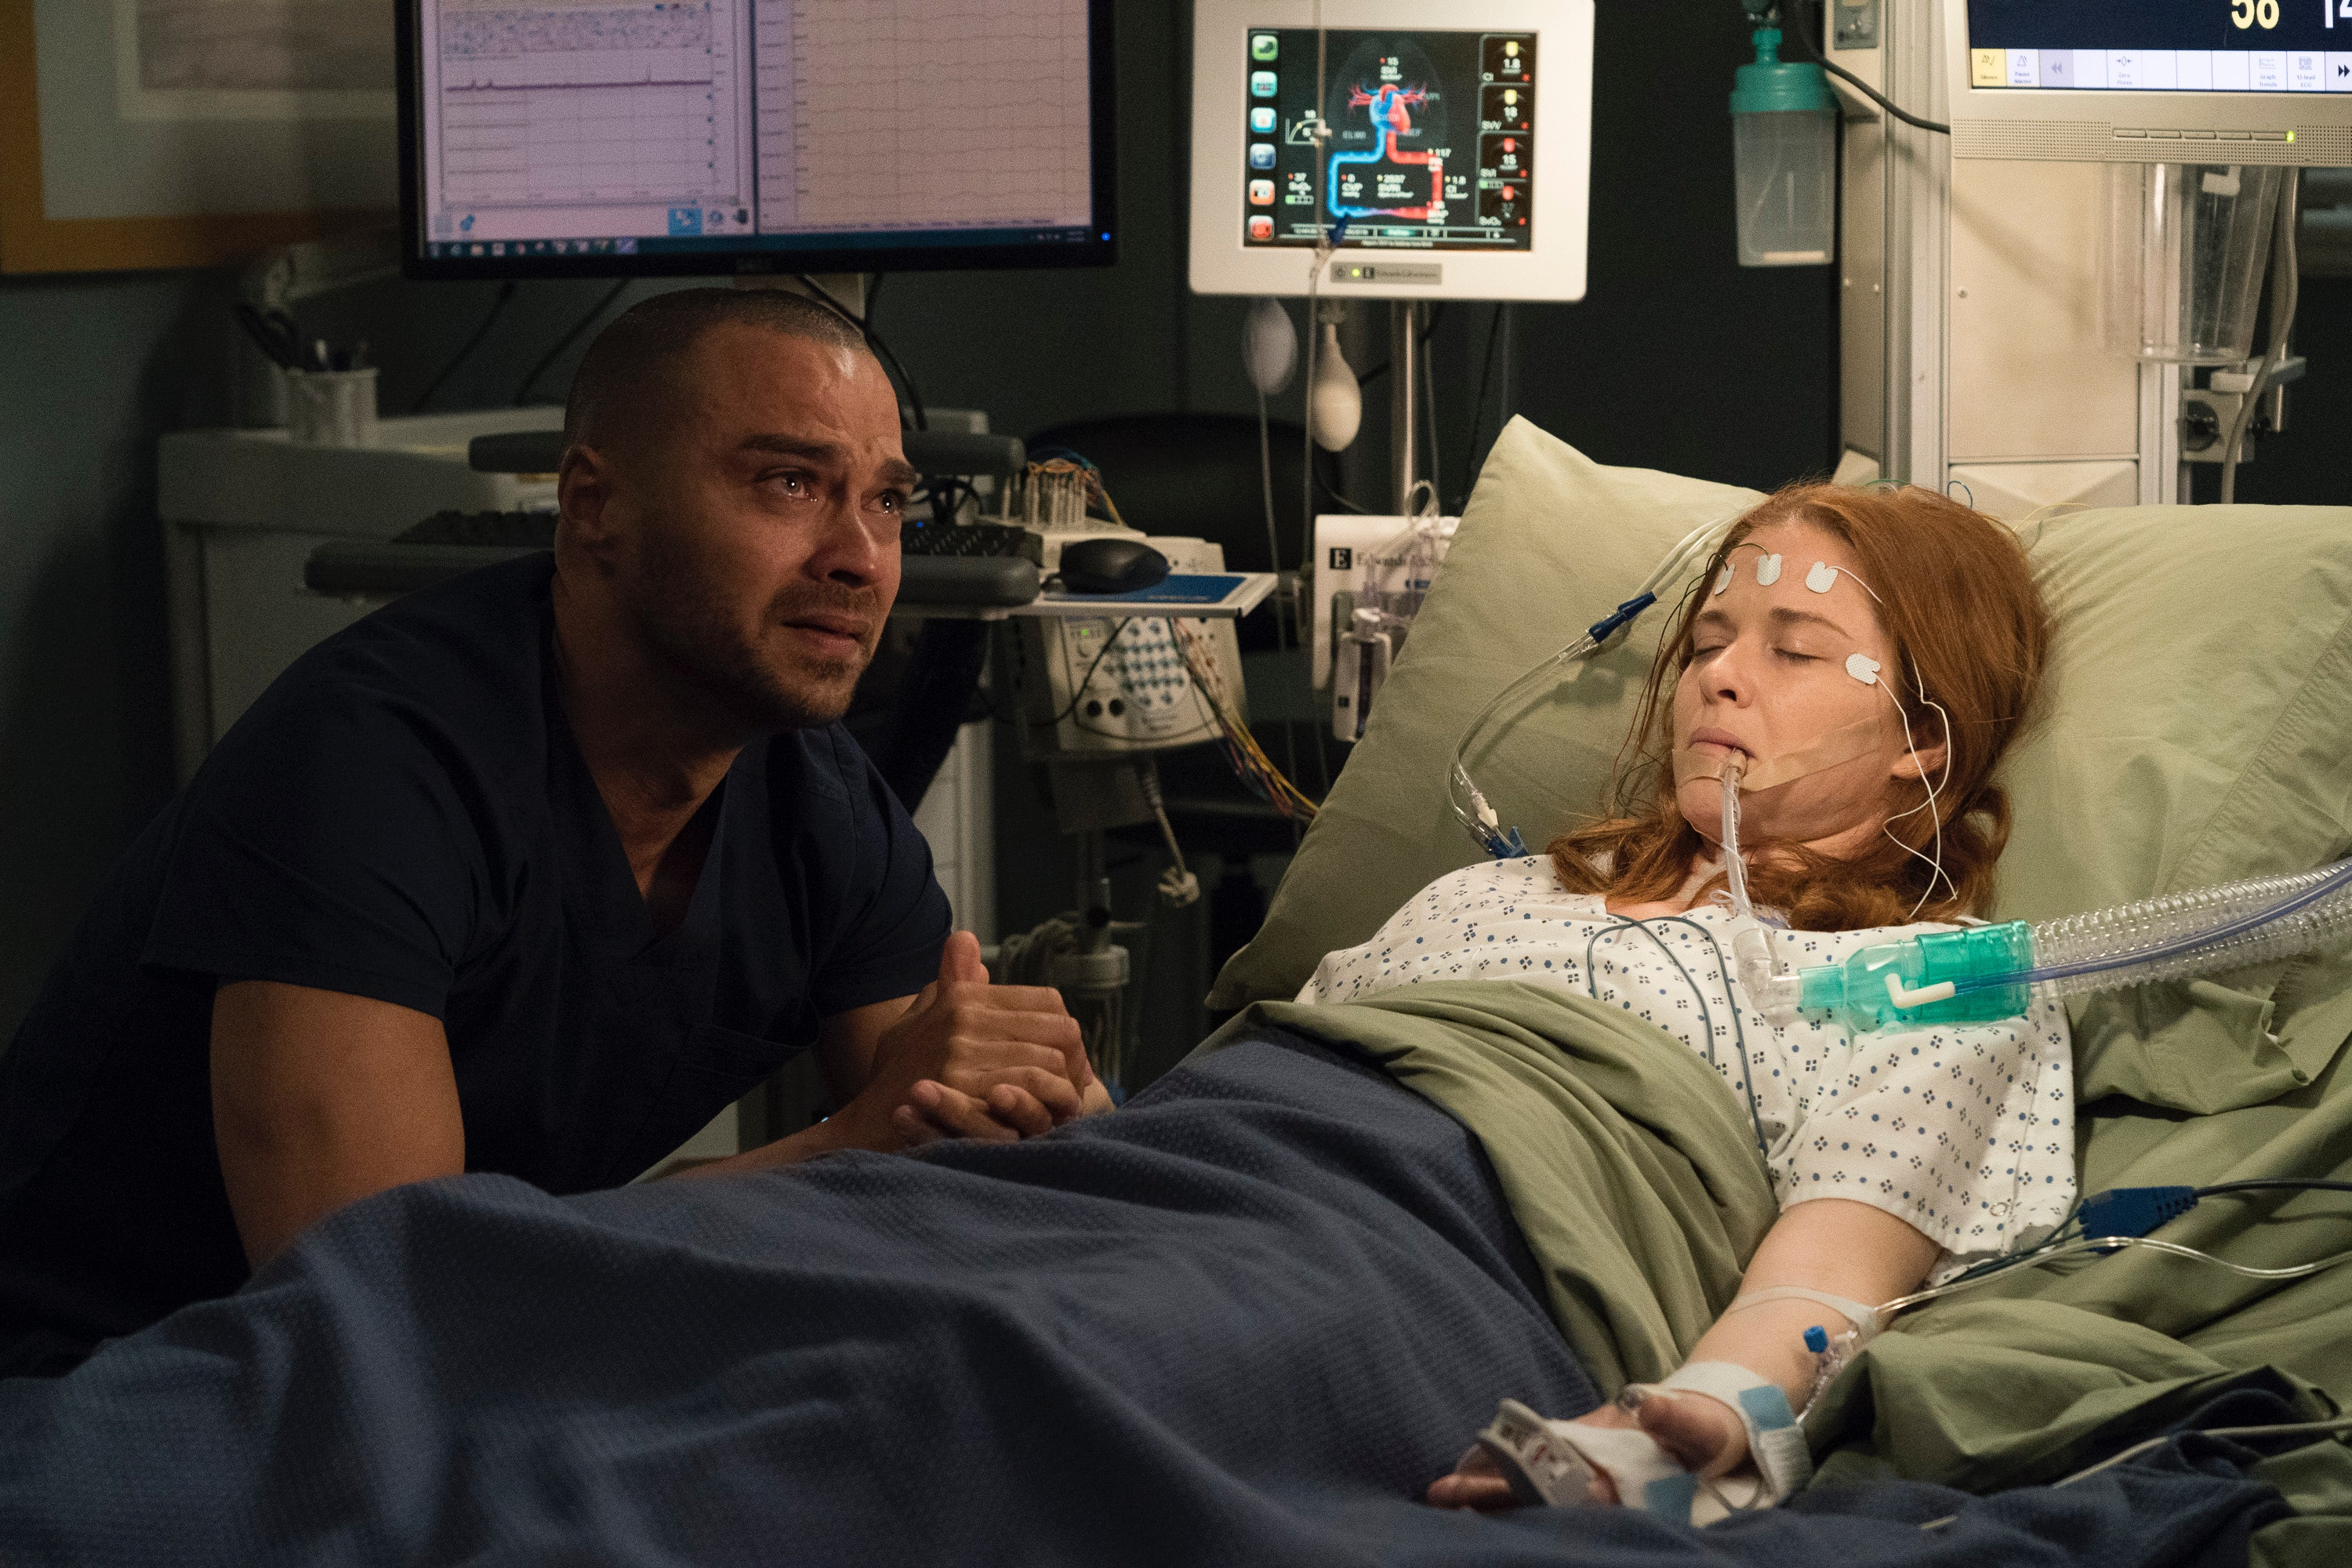 Anatomy Of A Love Seen En Español the 14 most heartbreaking 'grey's anatomy' episodes to watch